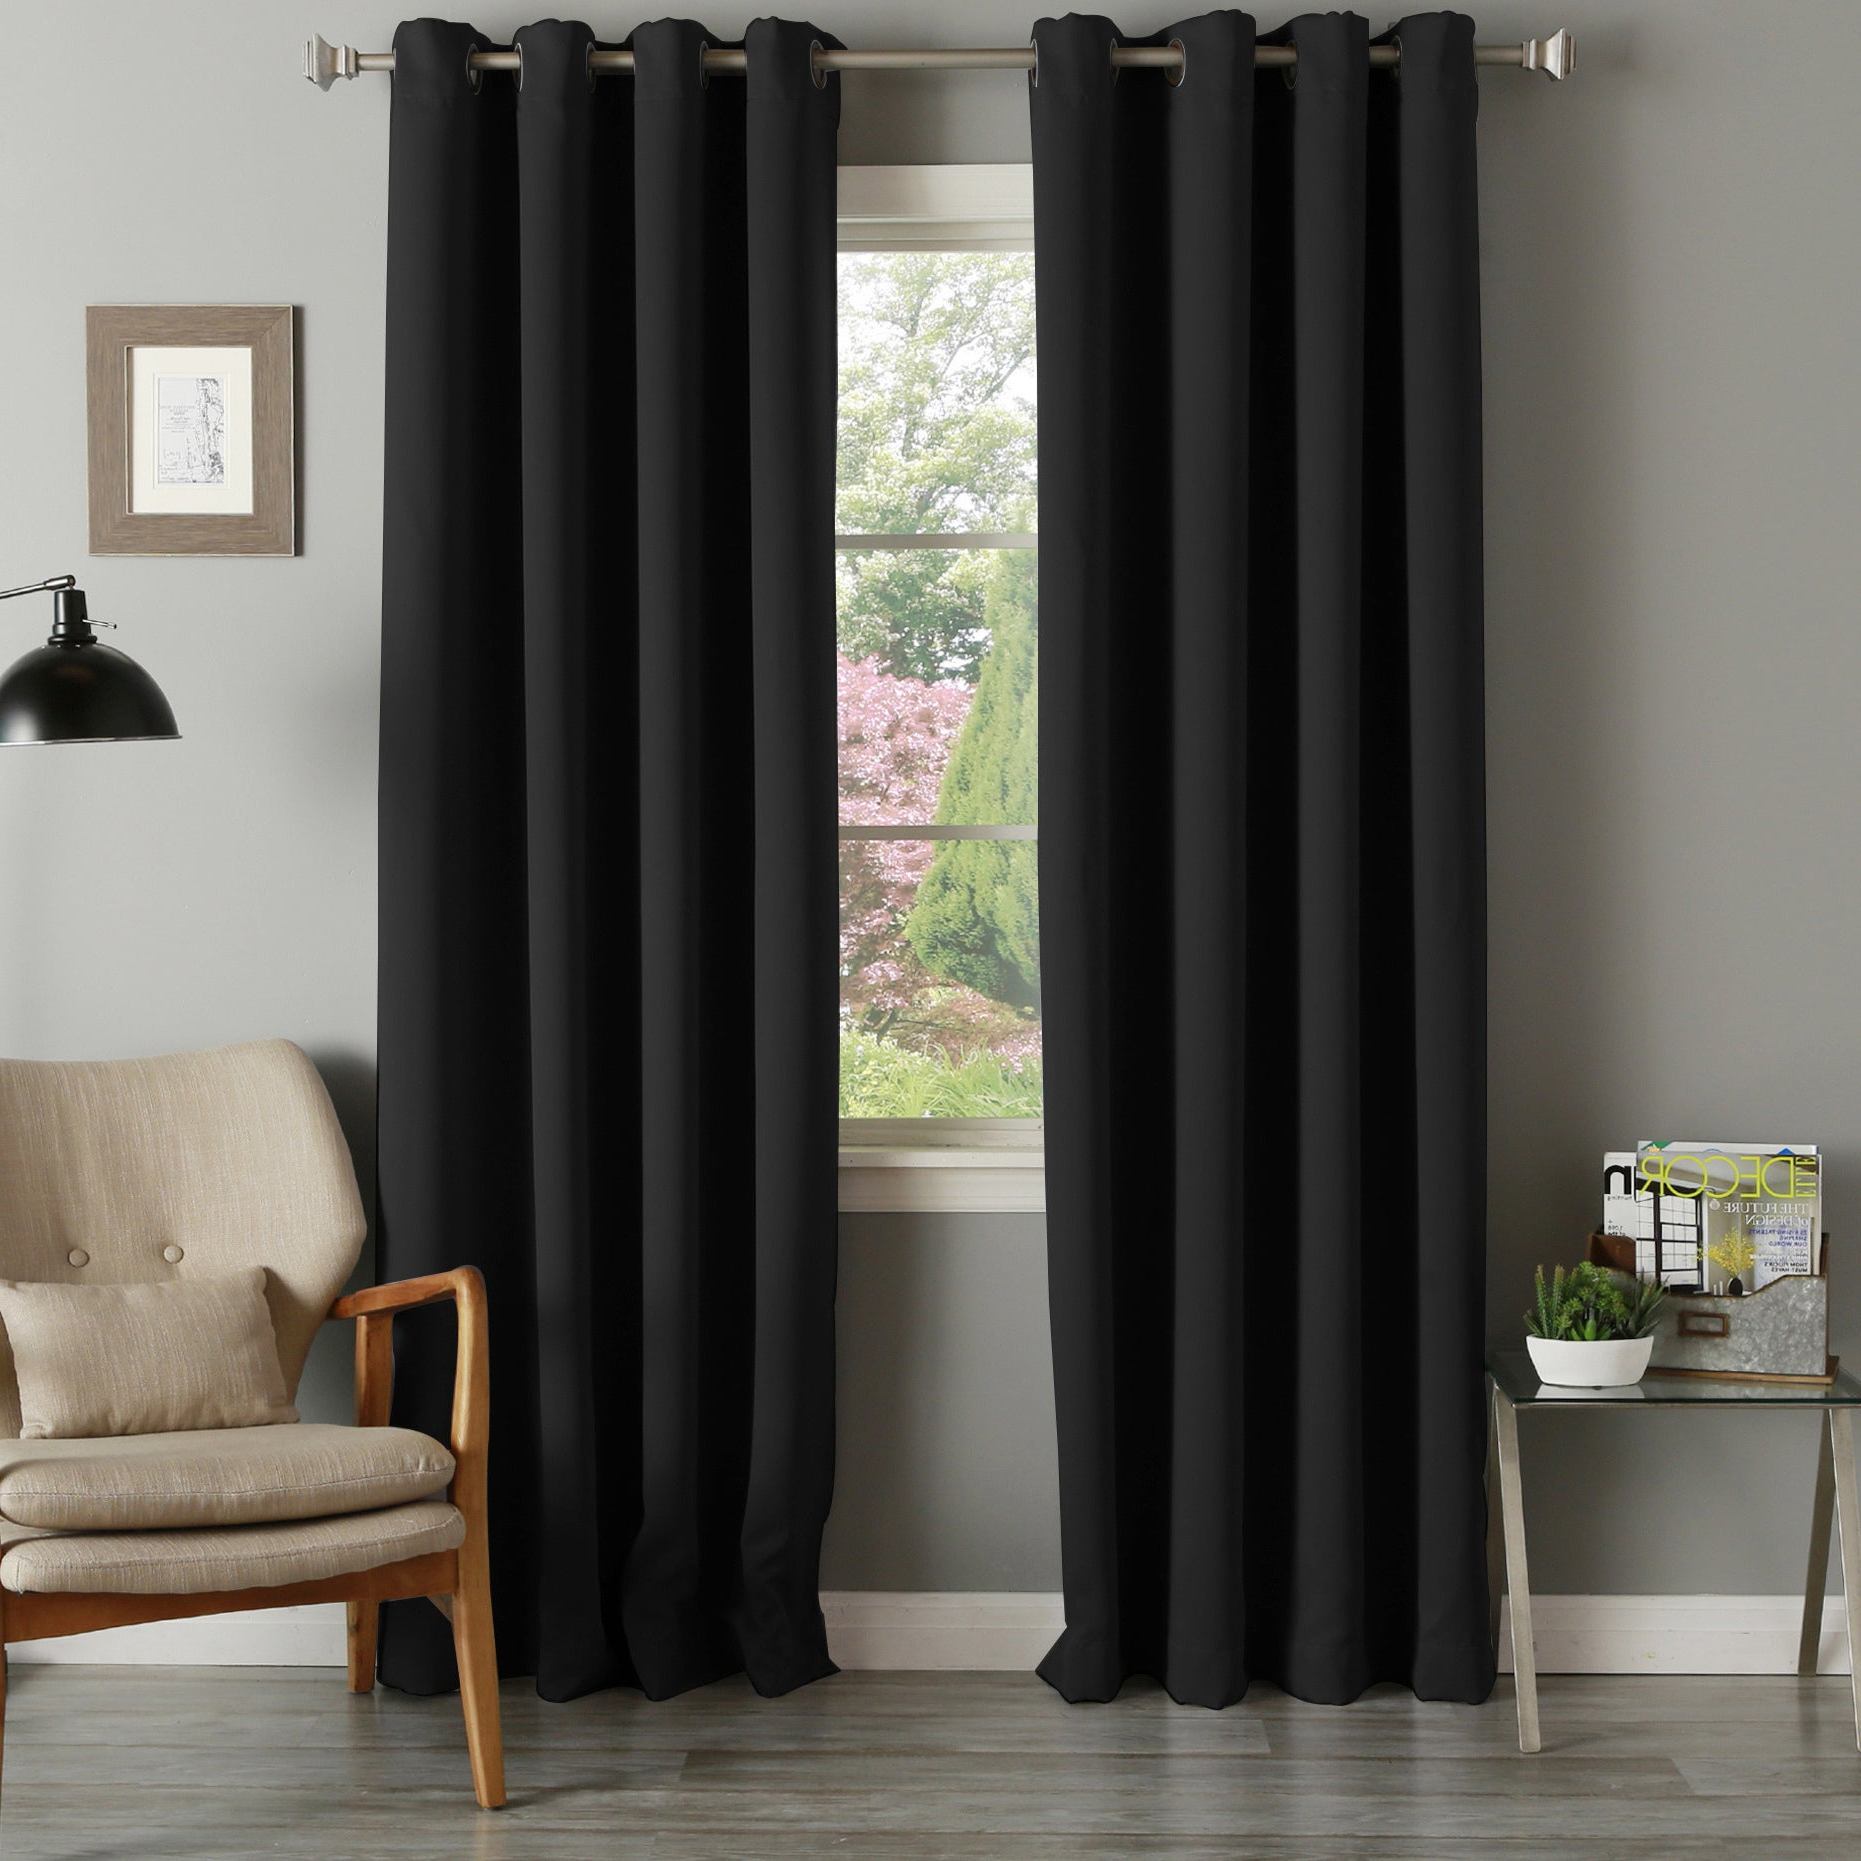 Thermal Insulated Blackout Curtain Panel Pairs With Regard To Most Recent Aurora Home Grommet Top Thermal Insulated 96 Inch Blackout Curtain Panel  Pair – 52 X  (View 18 of 20)